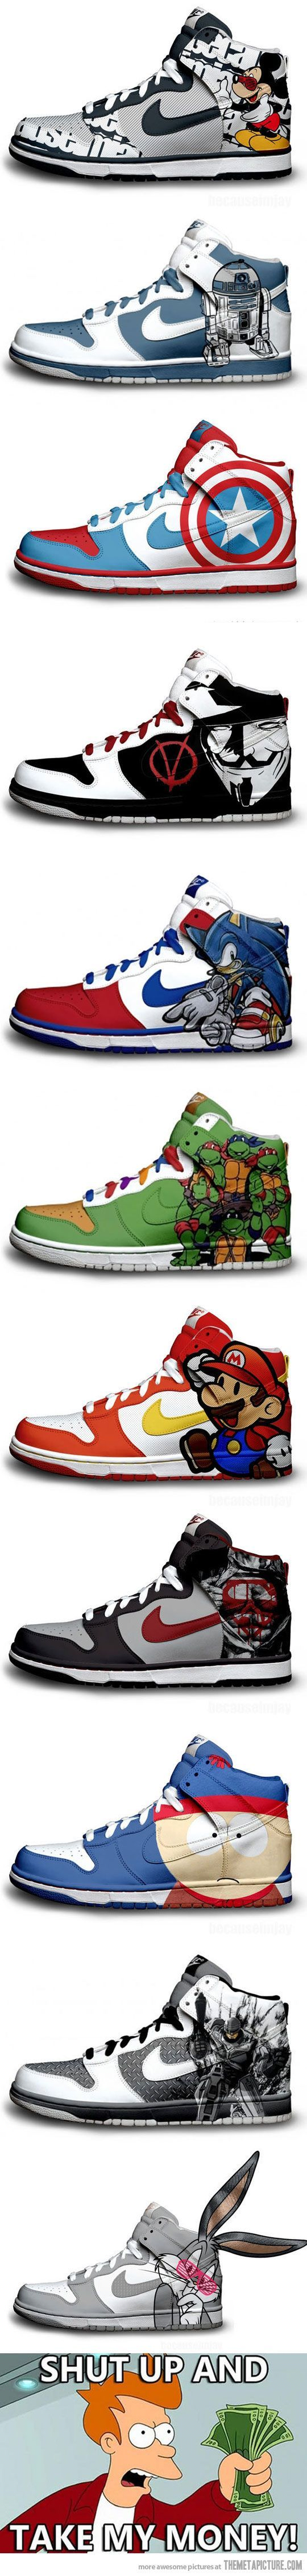 Awesome Nike Sneakers, just wow.